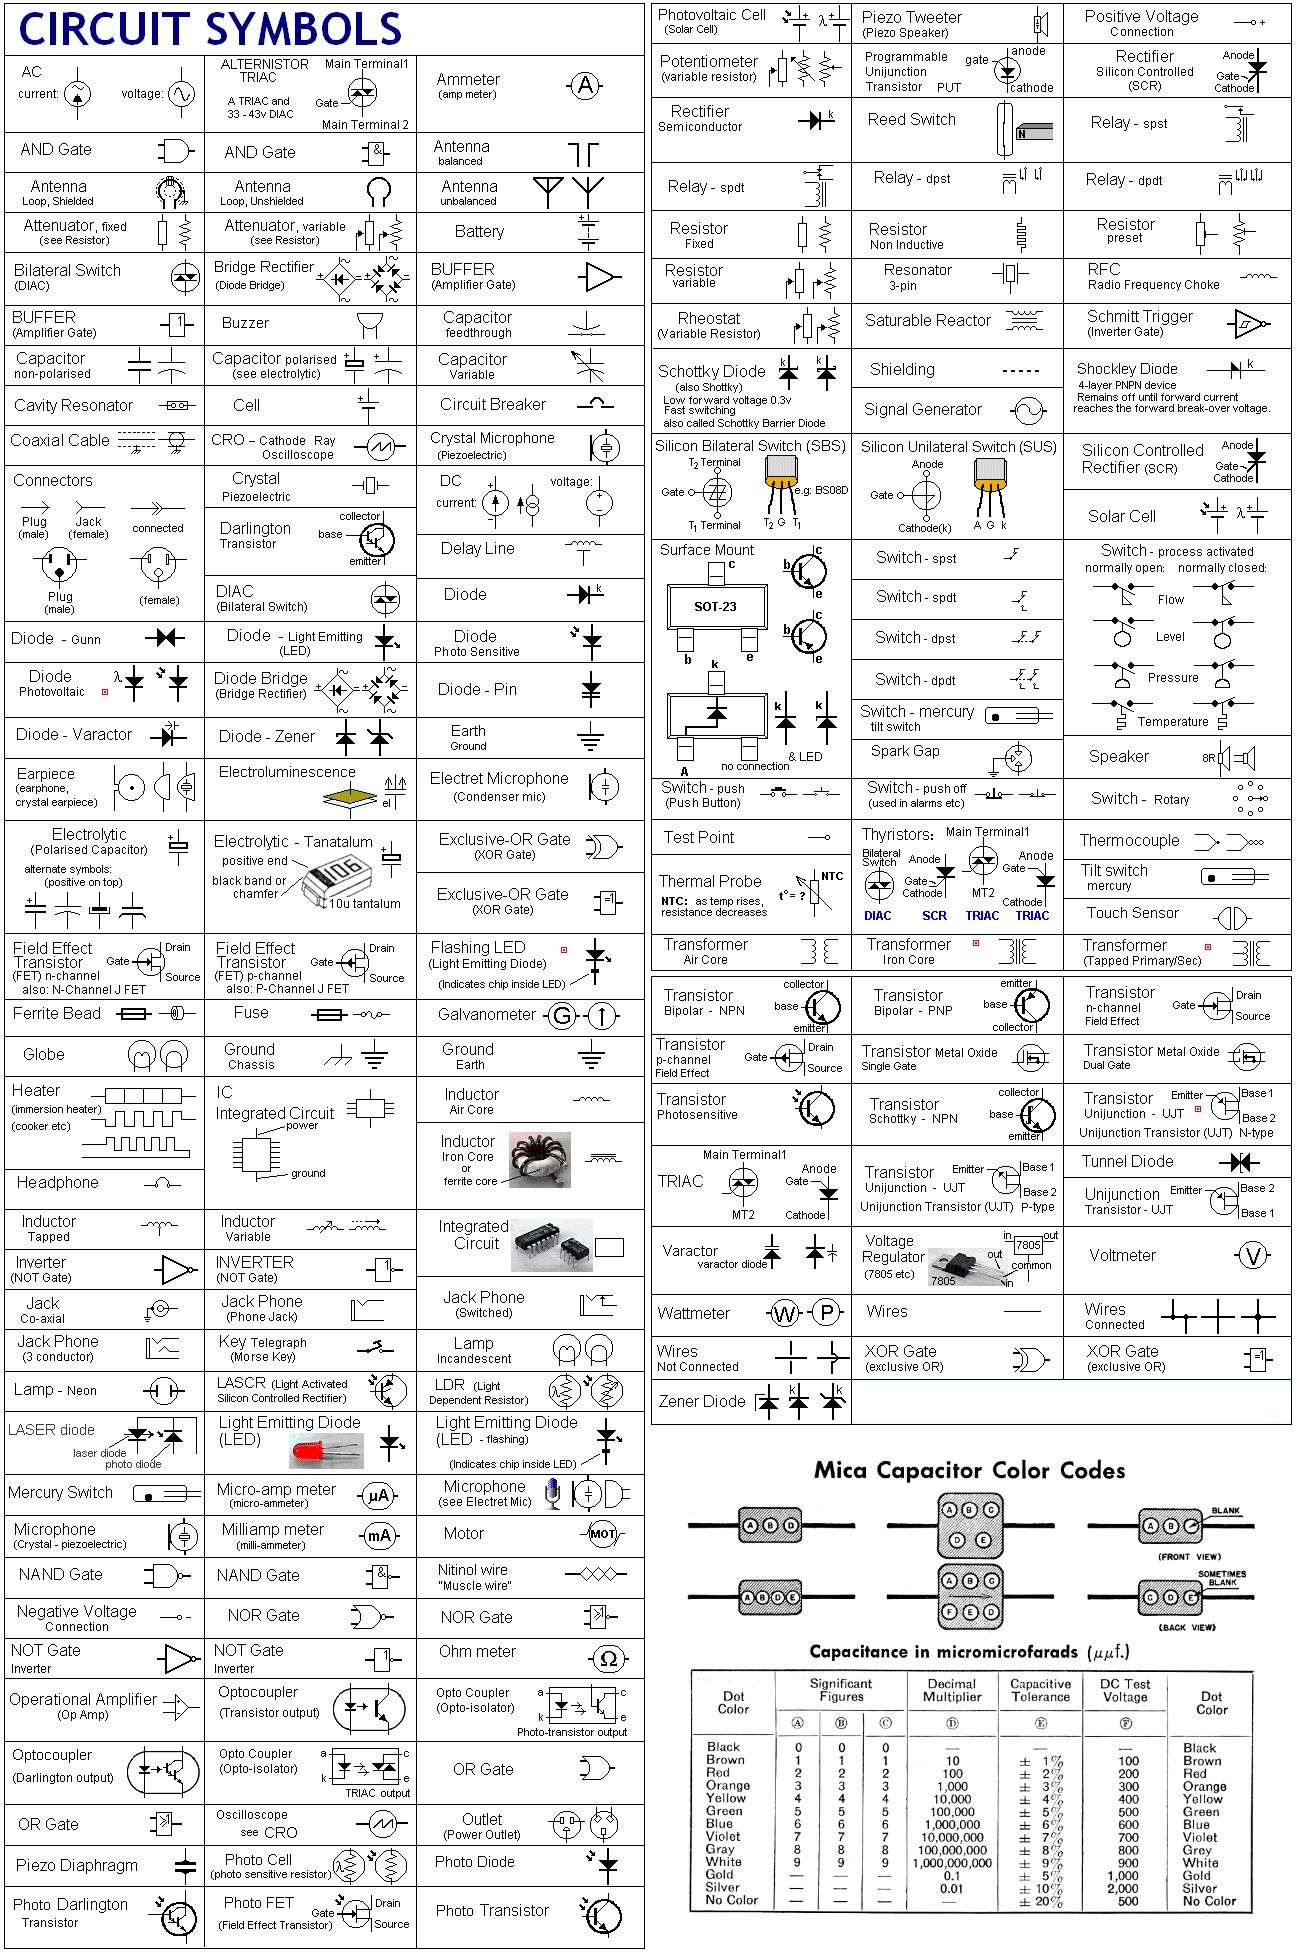 6c64fb84c8e162b28334051891c290f4 schematic symbols chart electric circuit symbols a considerably electrical wiring symbols chart at cos-gaming.co